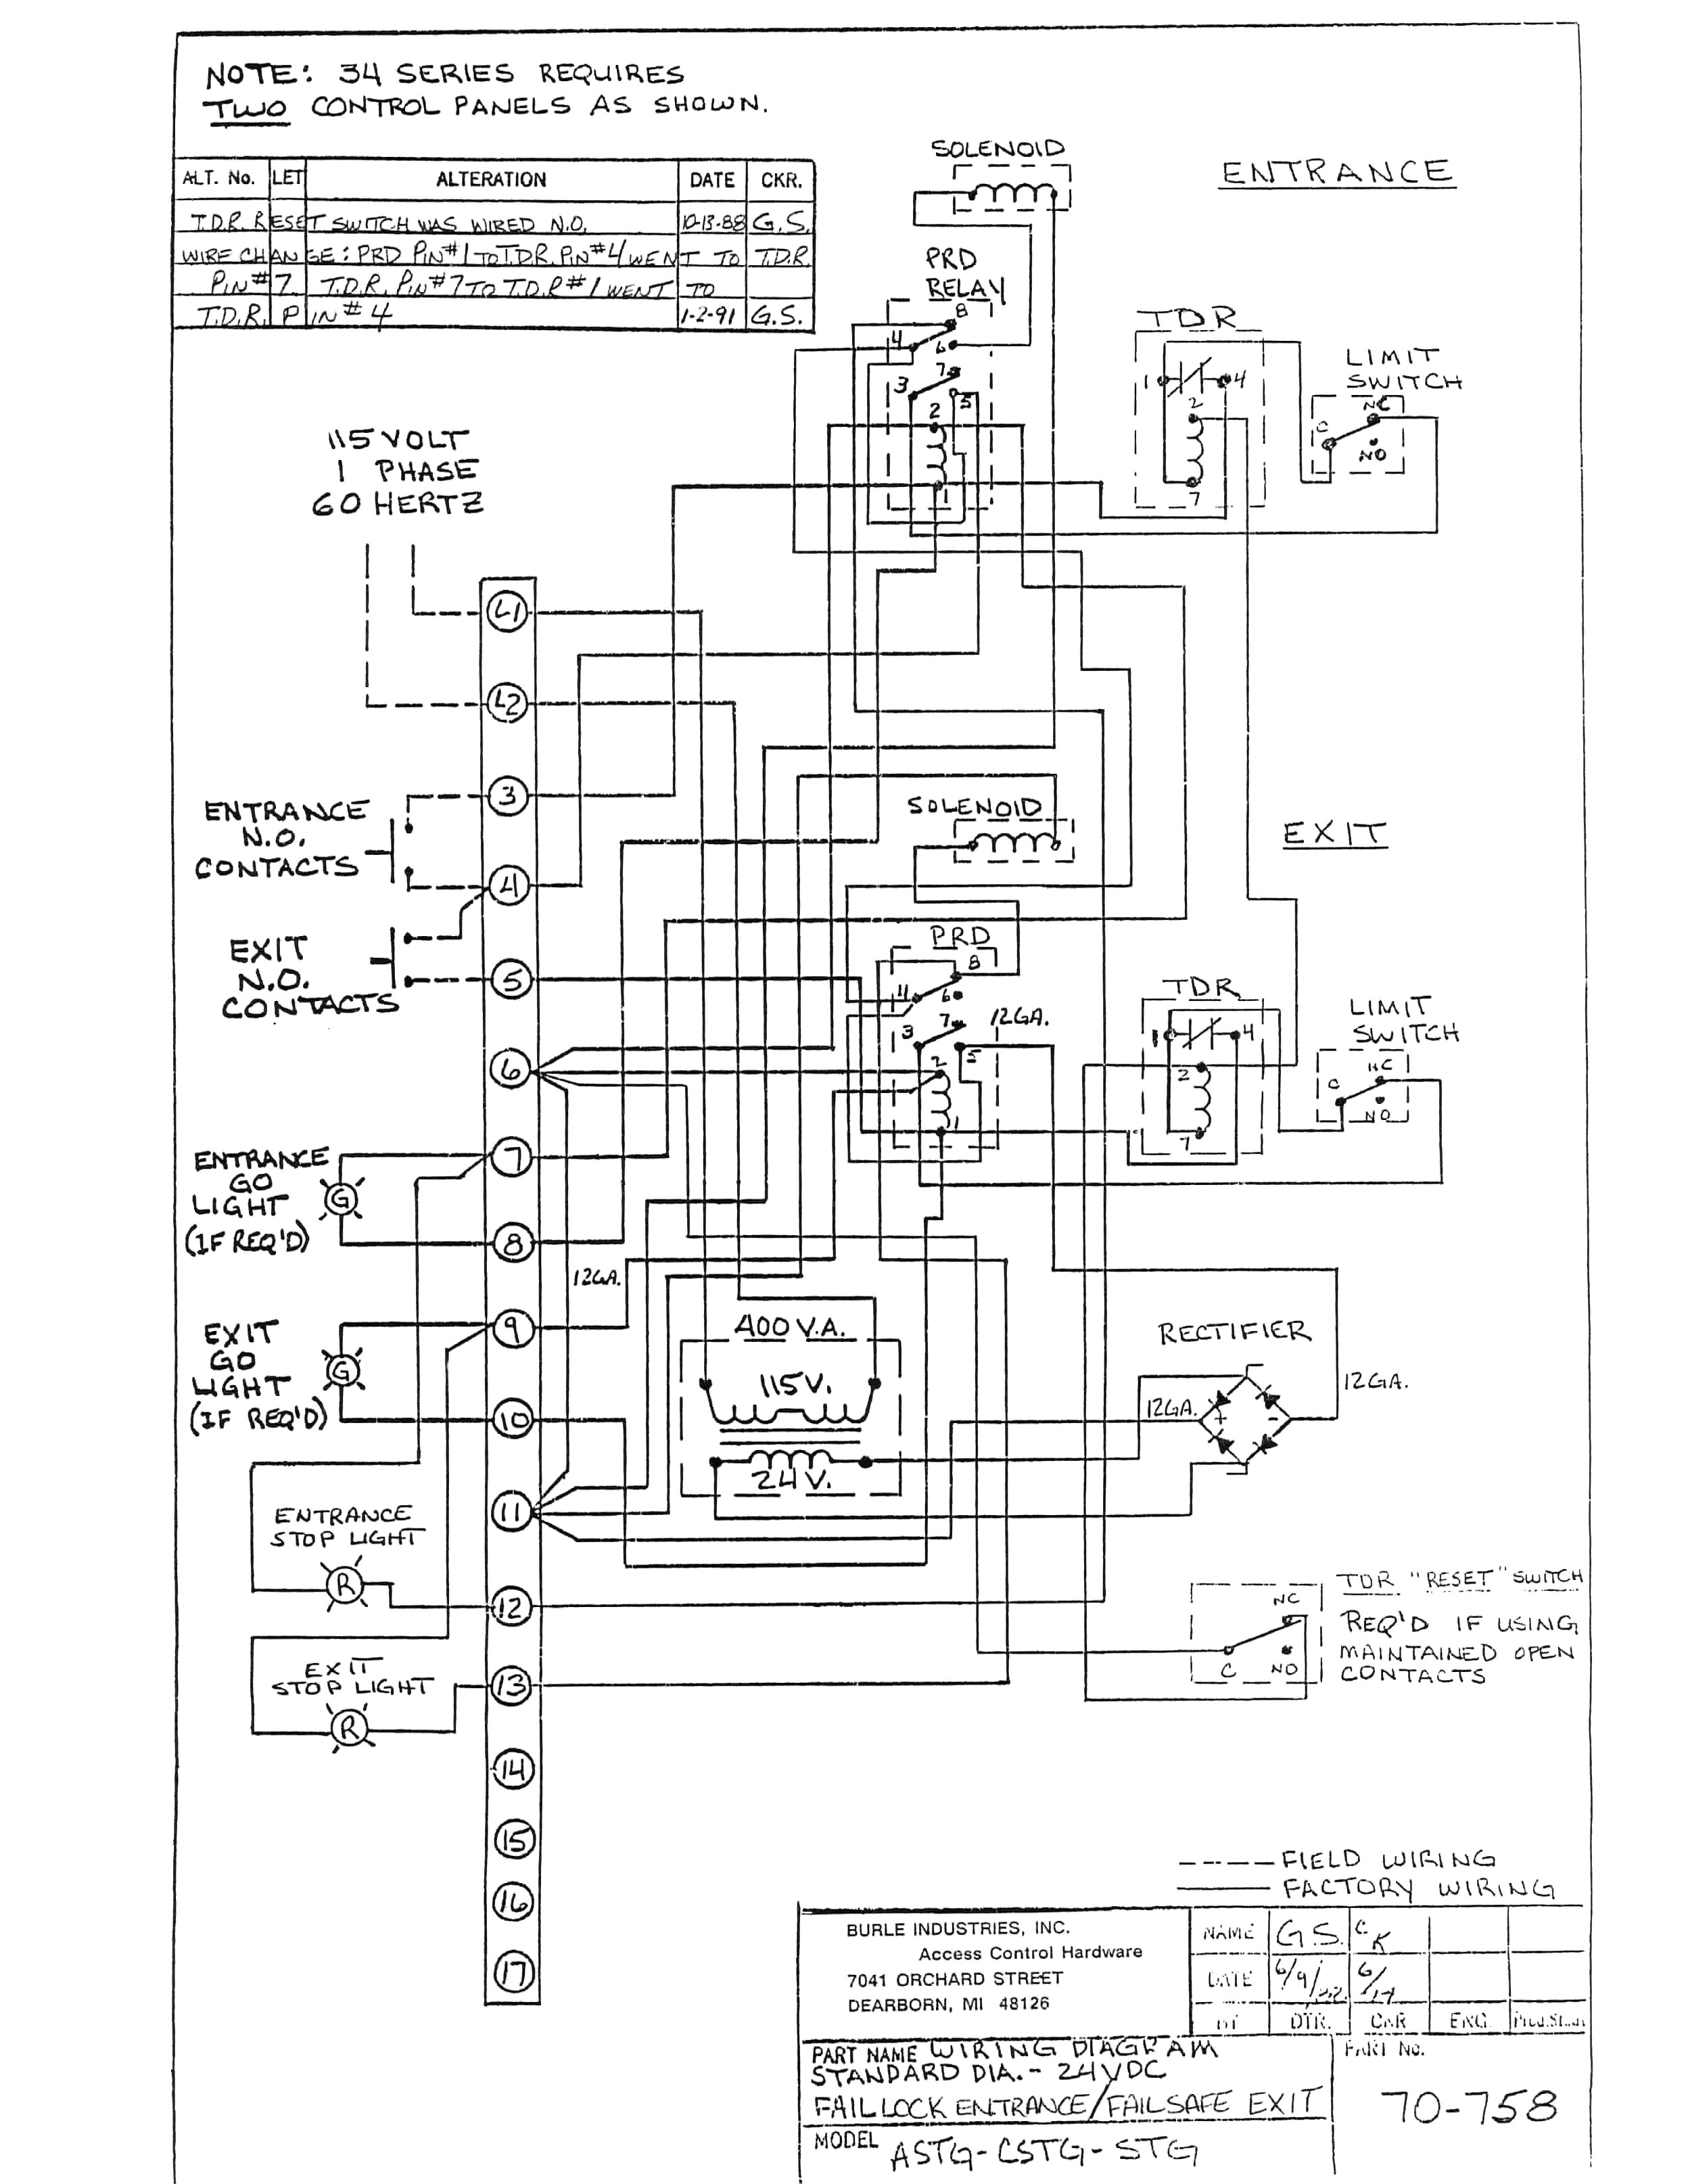 [SCHEMATICS_43NM]  DIAGRAM] Aaon Rooftop Units Wiring Diagram FULL Version HD Quality Wiring  Diagram - M40SCHEMATIC505.CONCESSIONARIABELOGISENIGALLIA.IT | Aaon Rooftop Units Wiring Diagram |  | concessionariabelogisenigallia.it